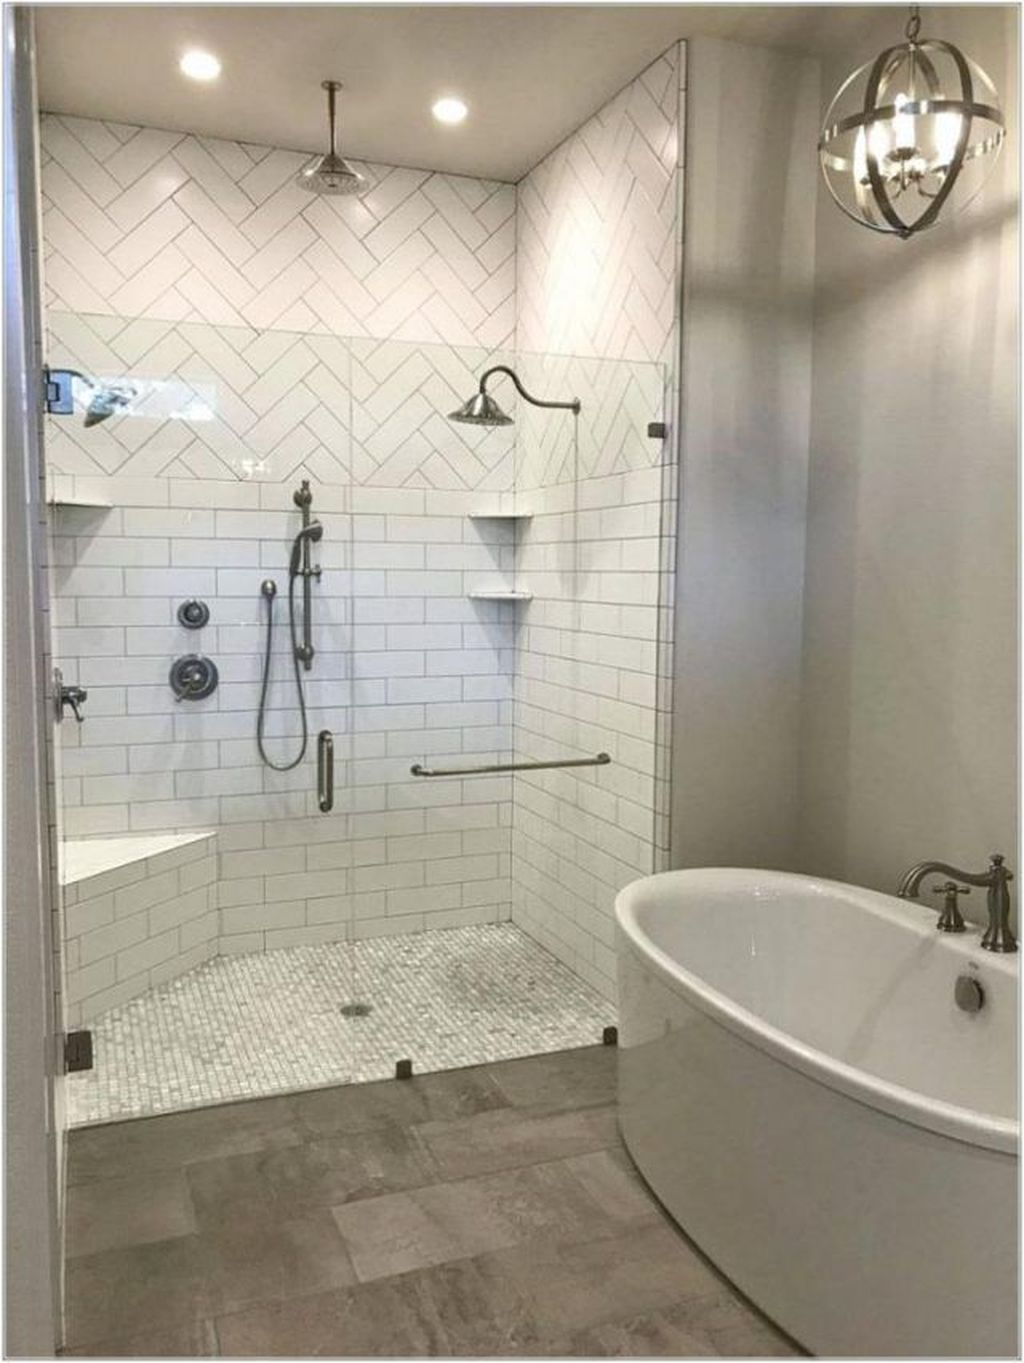 30 Awesome Master Bathroom Remodel Ideas On A Budget Coodecor Master Bathroom Decor Modern Master Bathroom Master Bathroom Shower